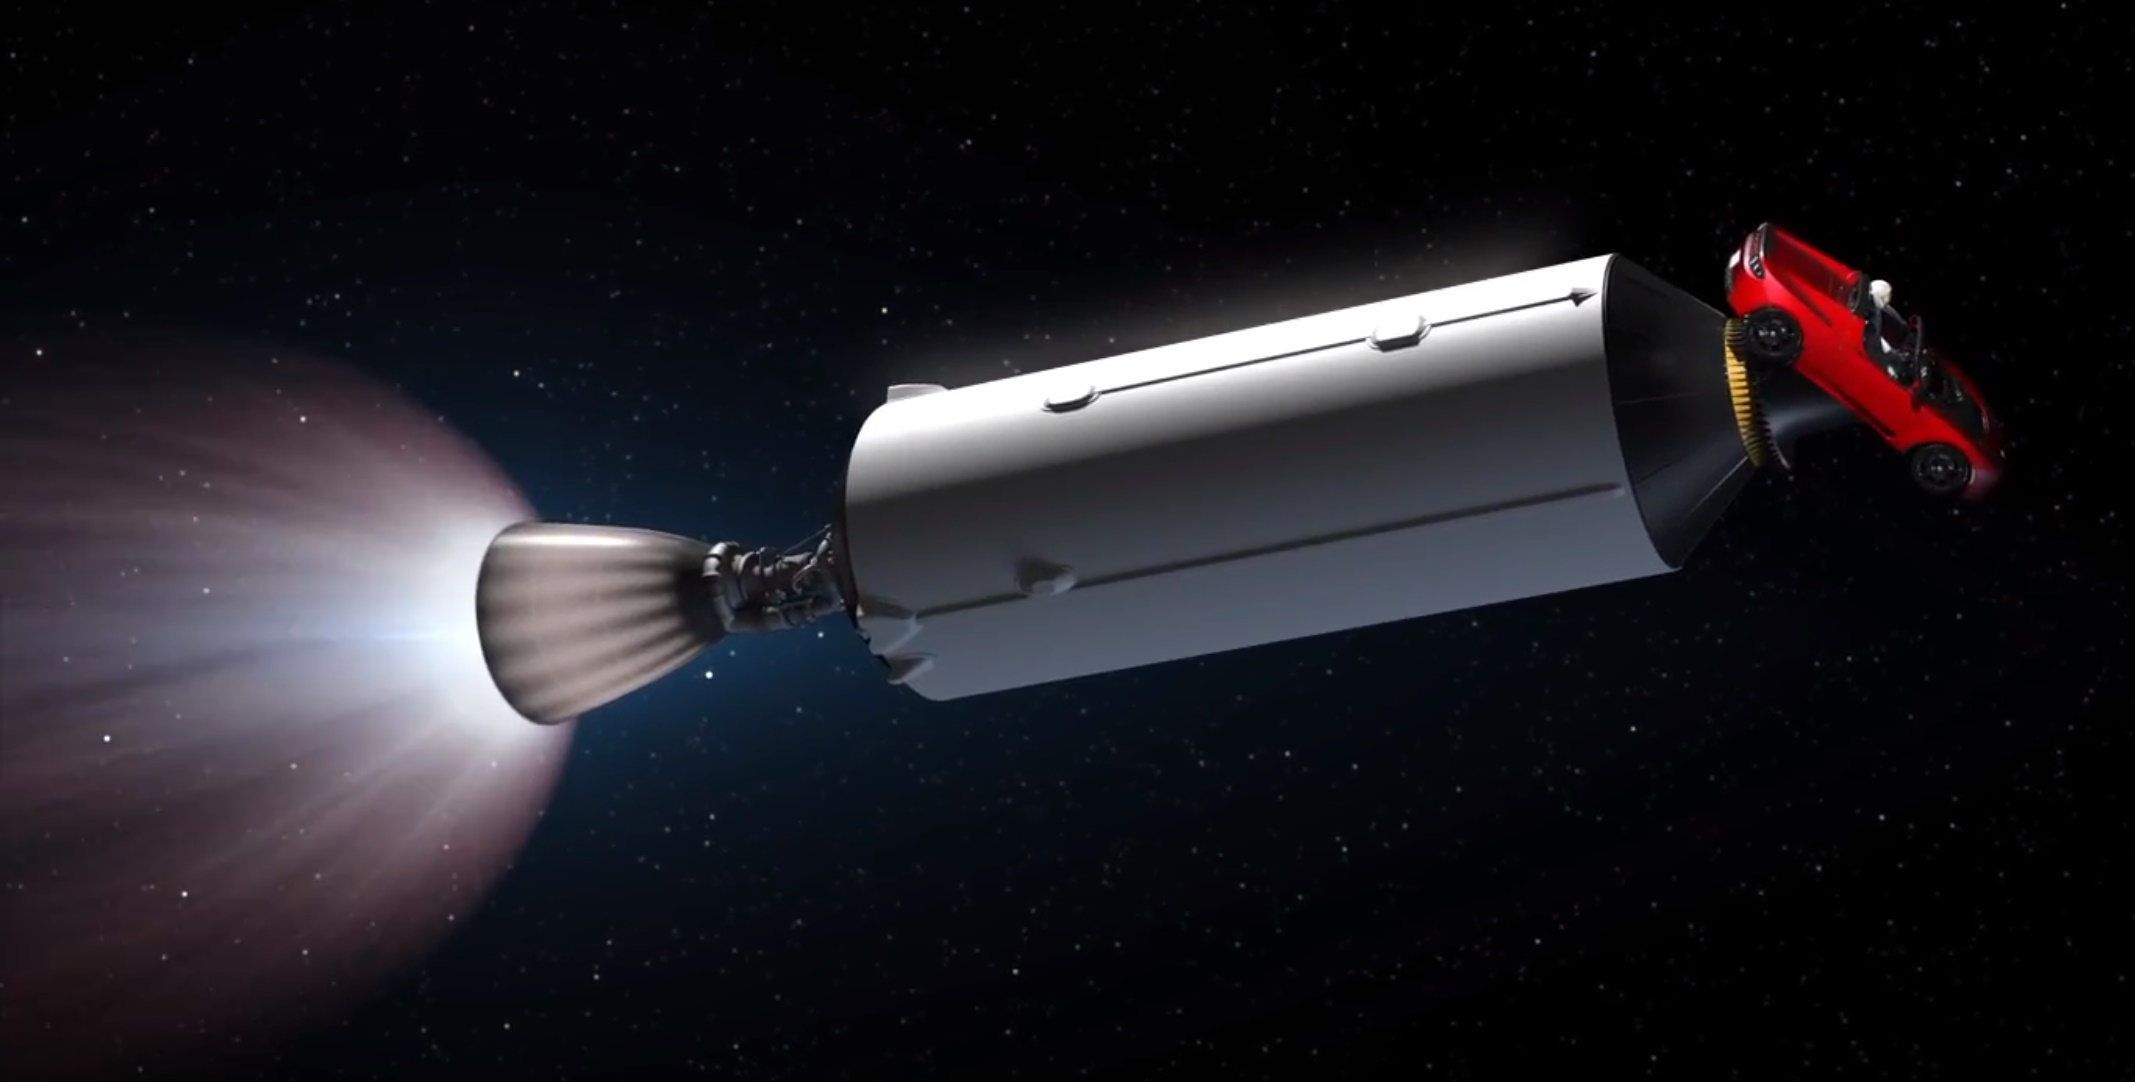 Falcon Heavy Roadster in space (SpaceX)